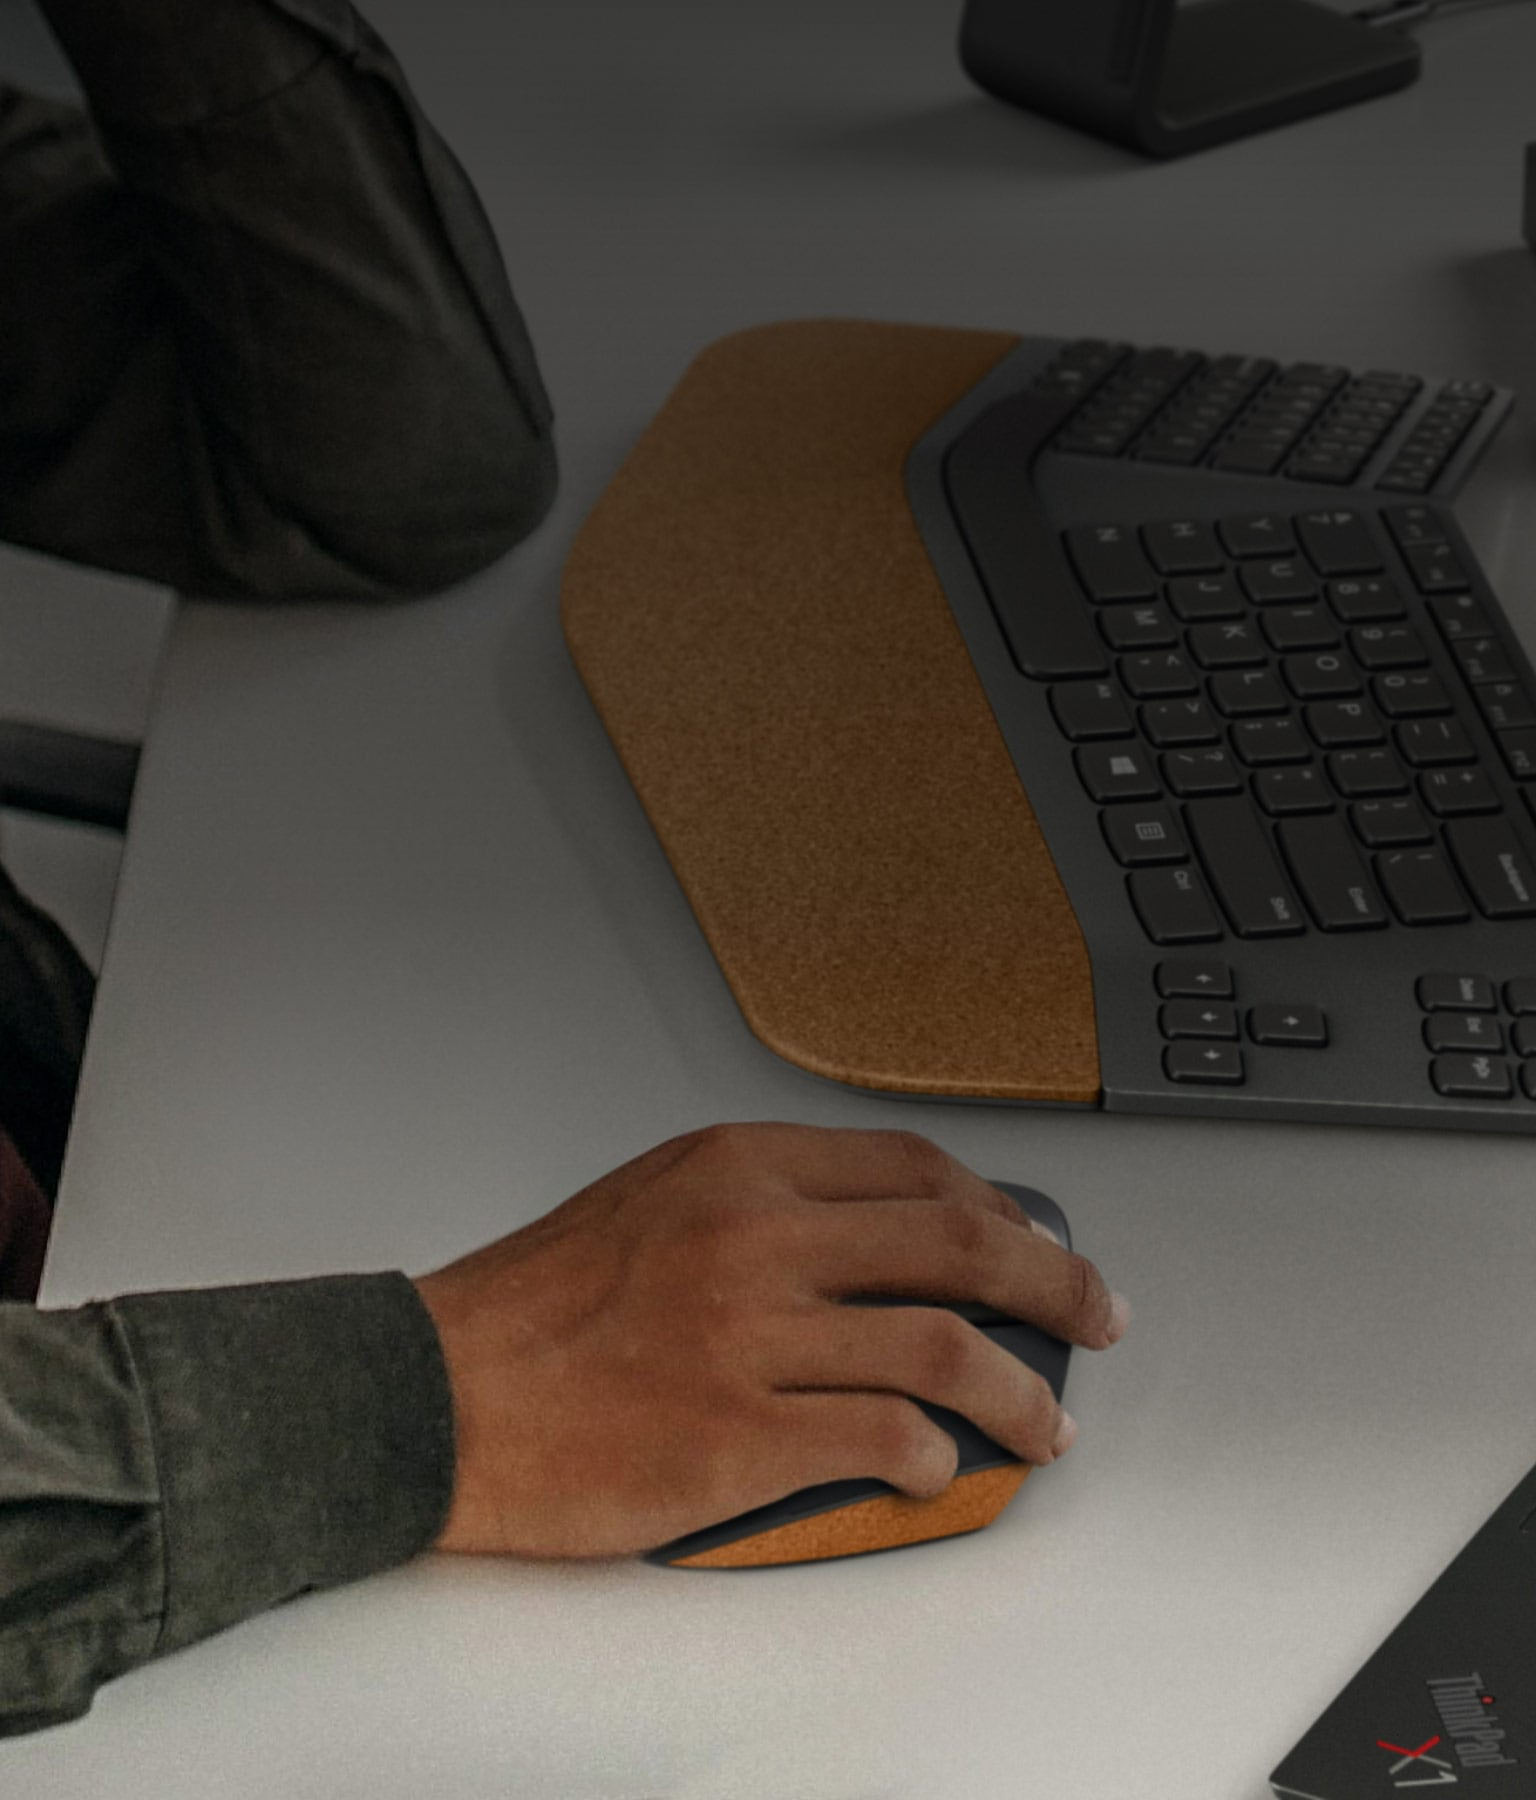 Lenovo Go Wireless Vertical Mouse in a user's hand on a desk.